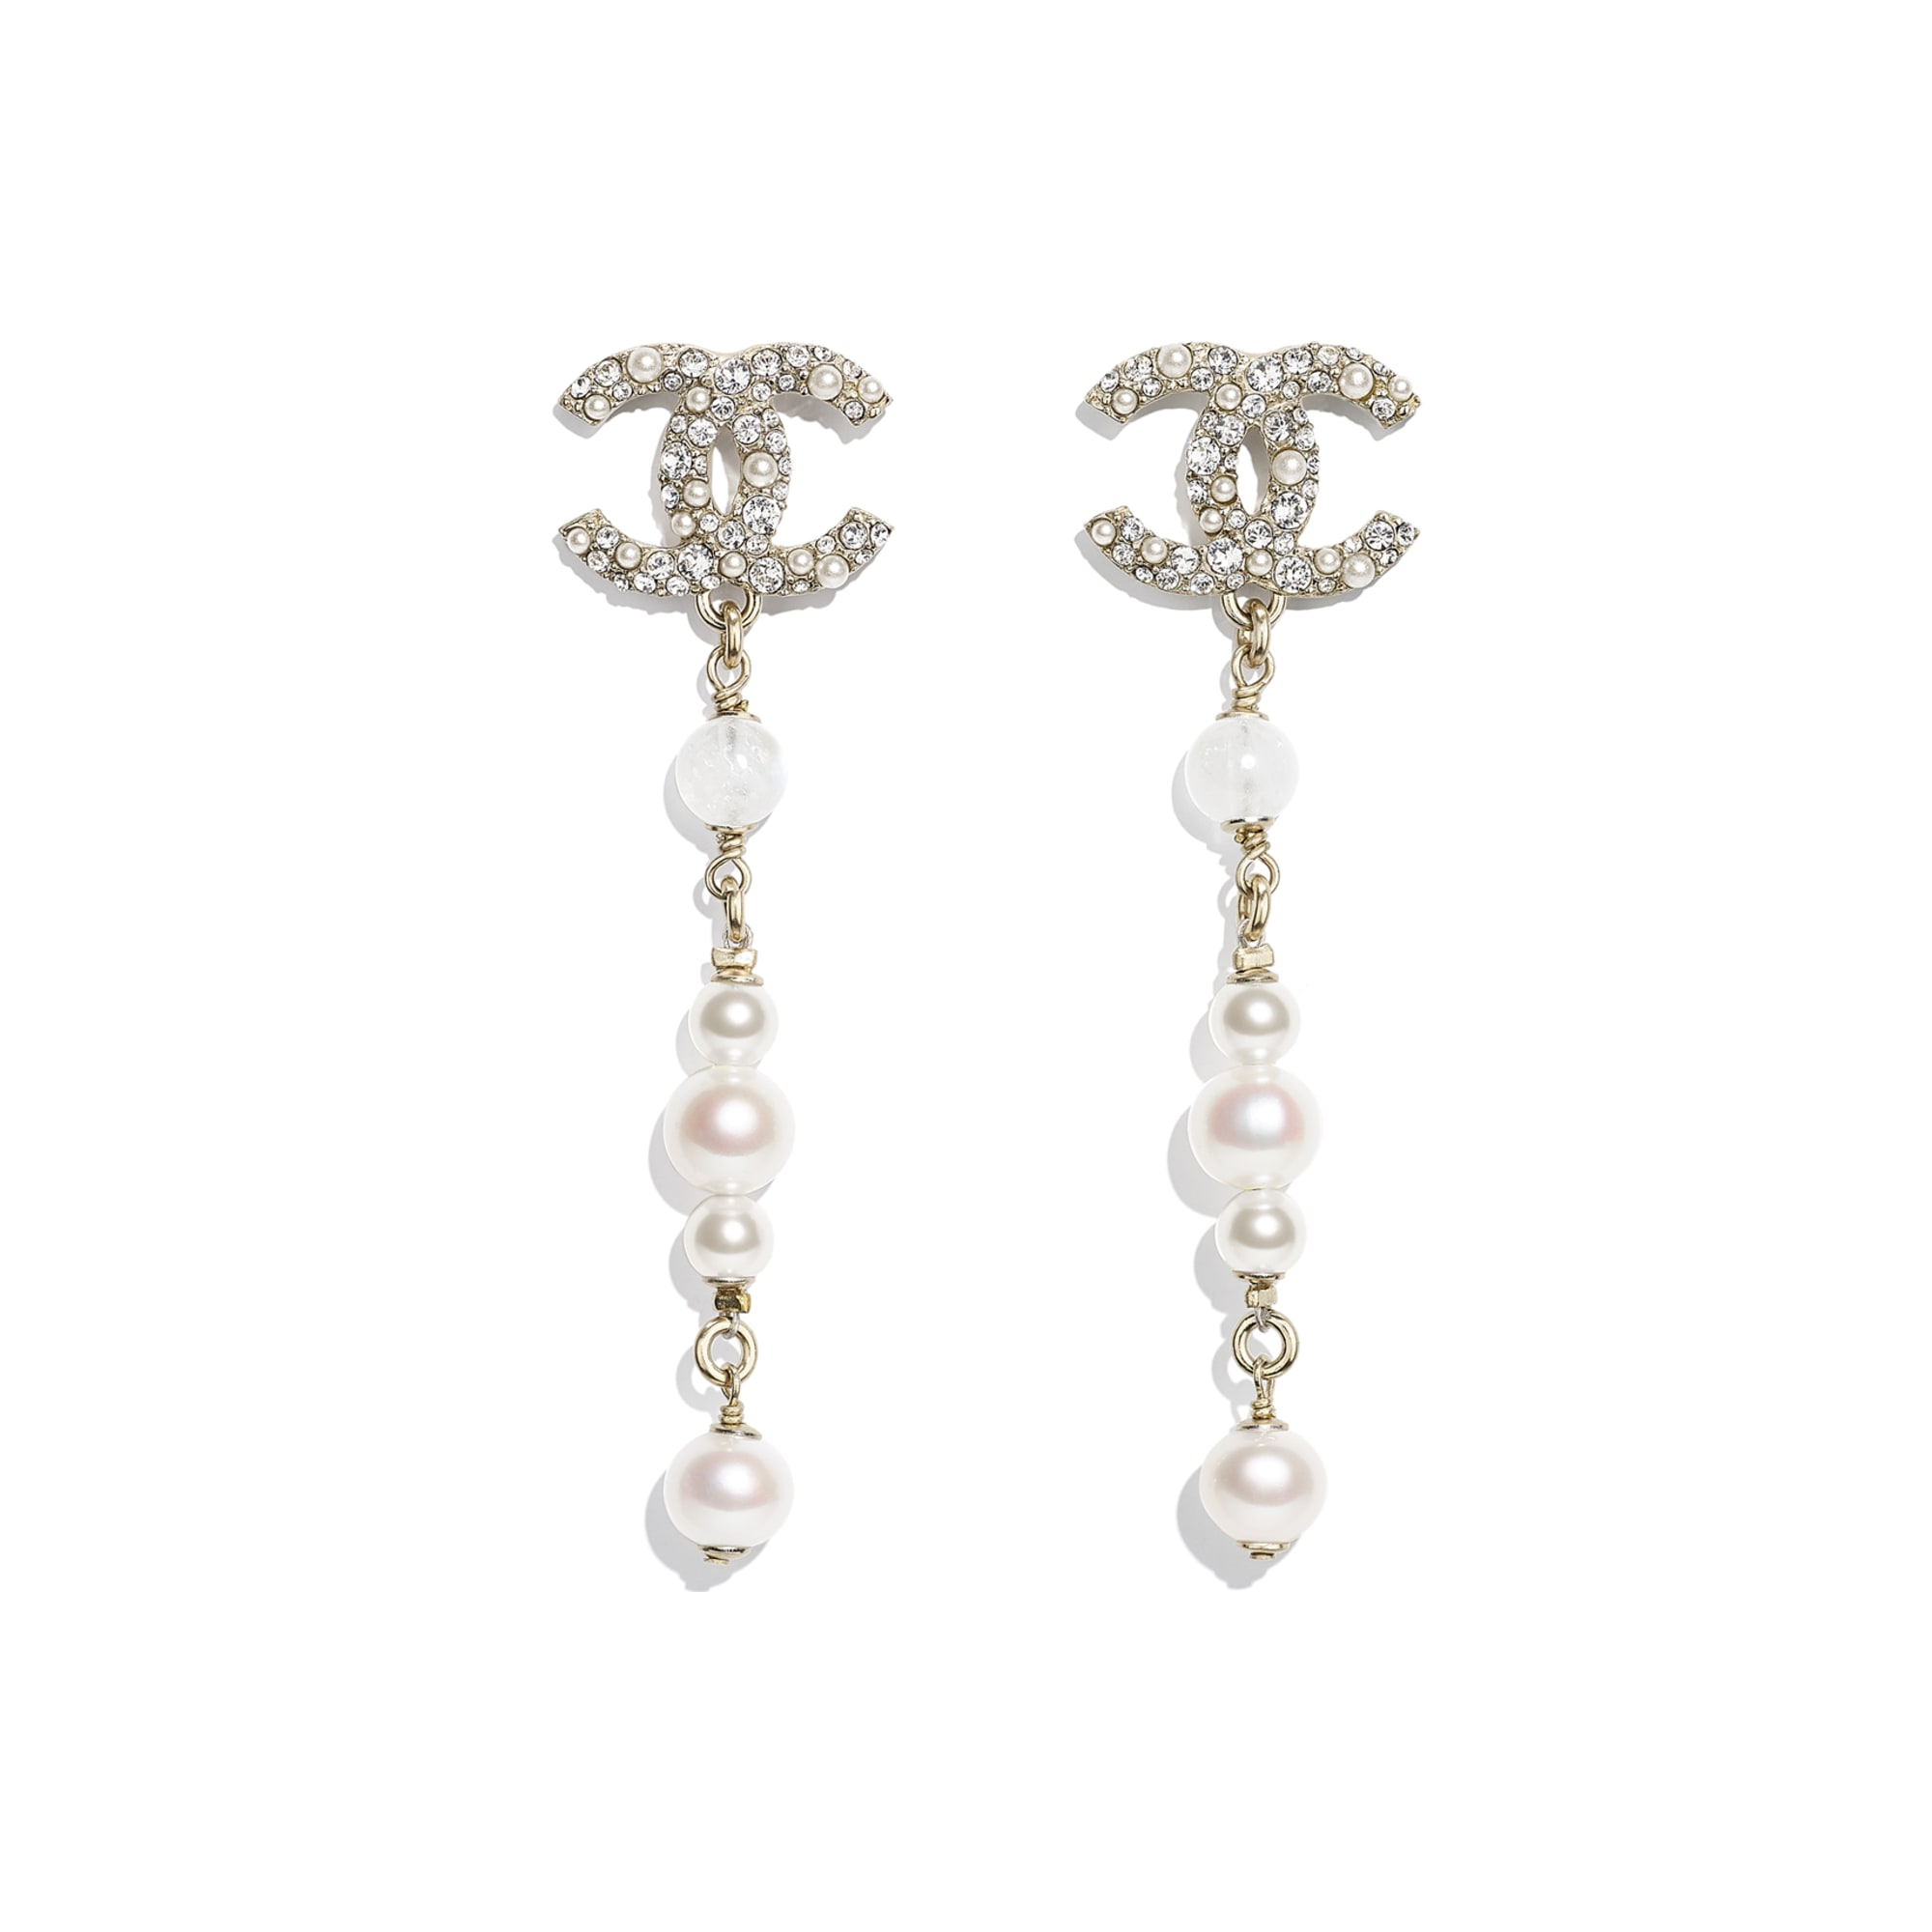 Earrings - Gold, Pearly White & Crystal - Metal, Natural Stones, Cultured Freshwater Pearls, Glass Pearls & Strass - CHANEL - Default view - see standard sized version